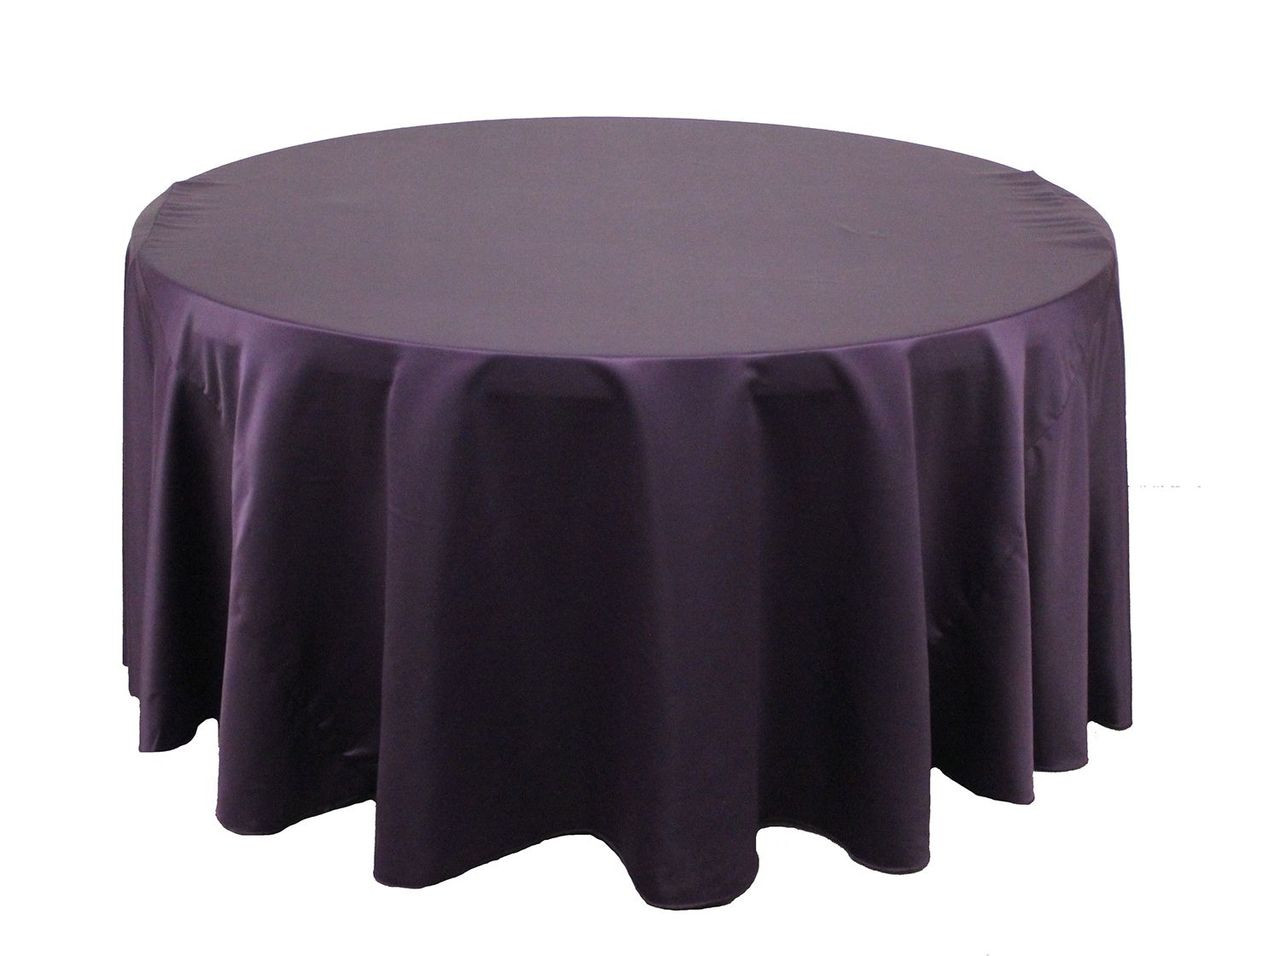 120 inch round l 39 amour tablecloth eggplant clearance for 120 inch round table seats how many